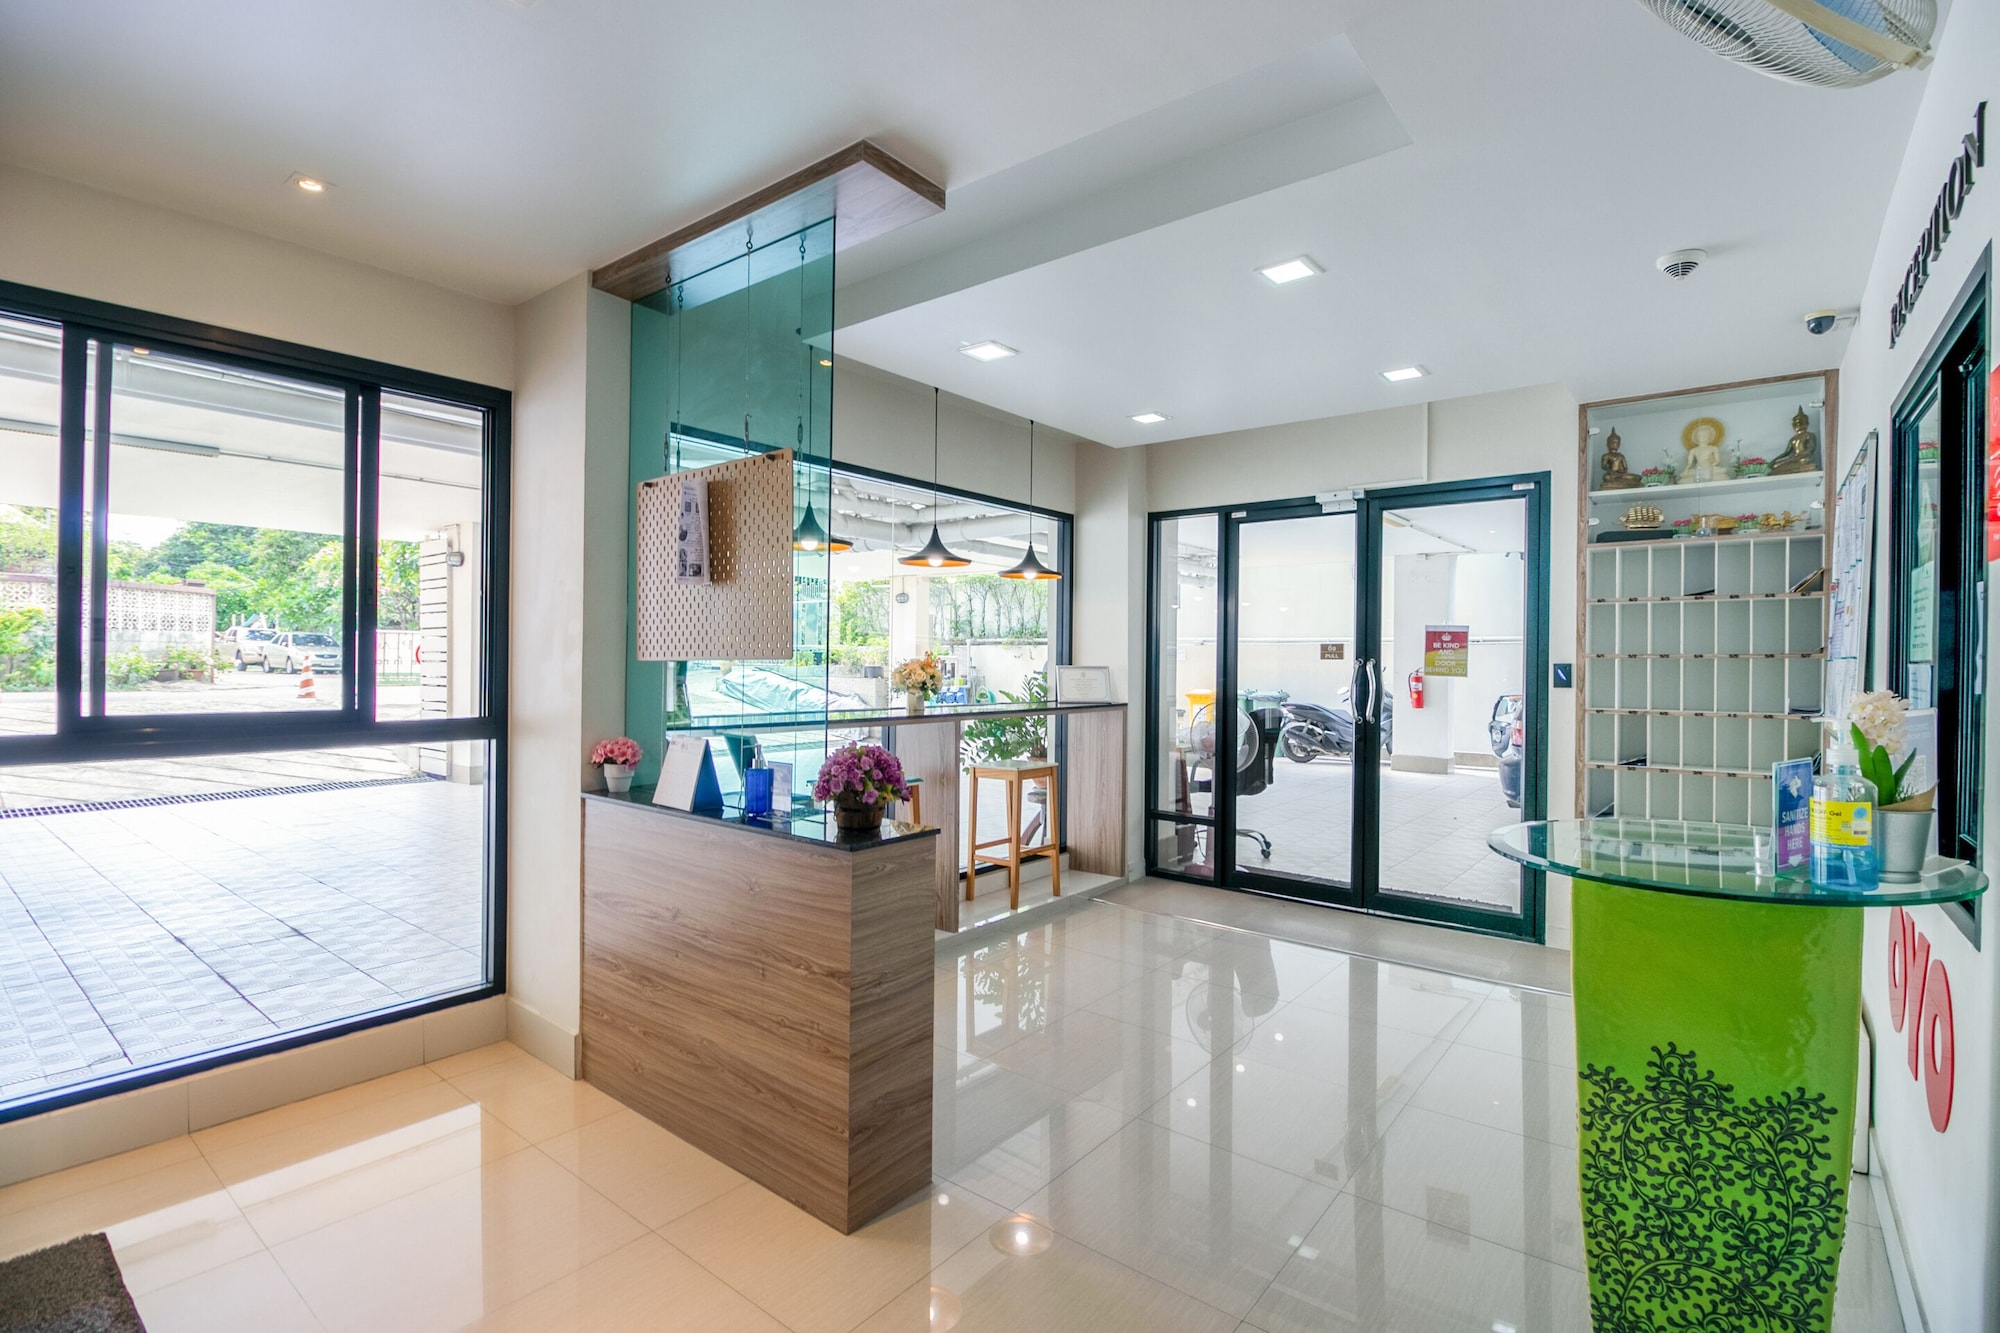 OYO 1061 Peaberry Place Apartment, Chatuchak